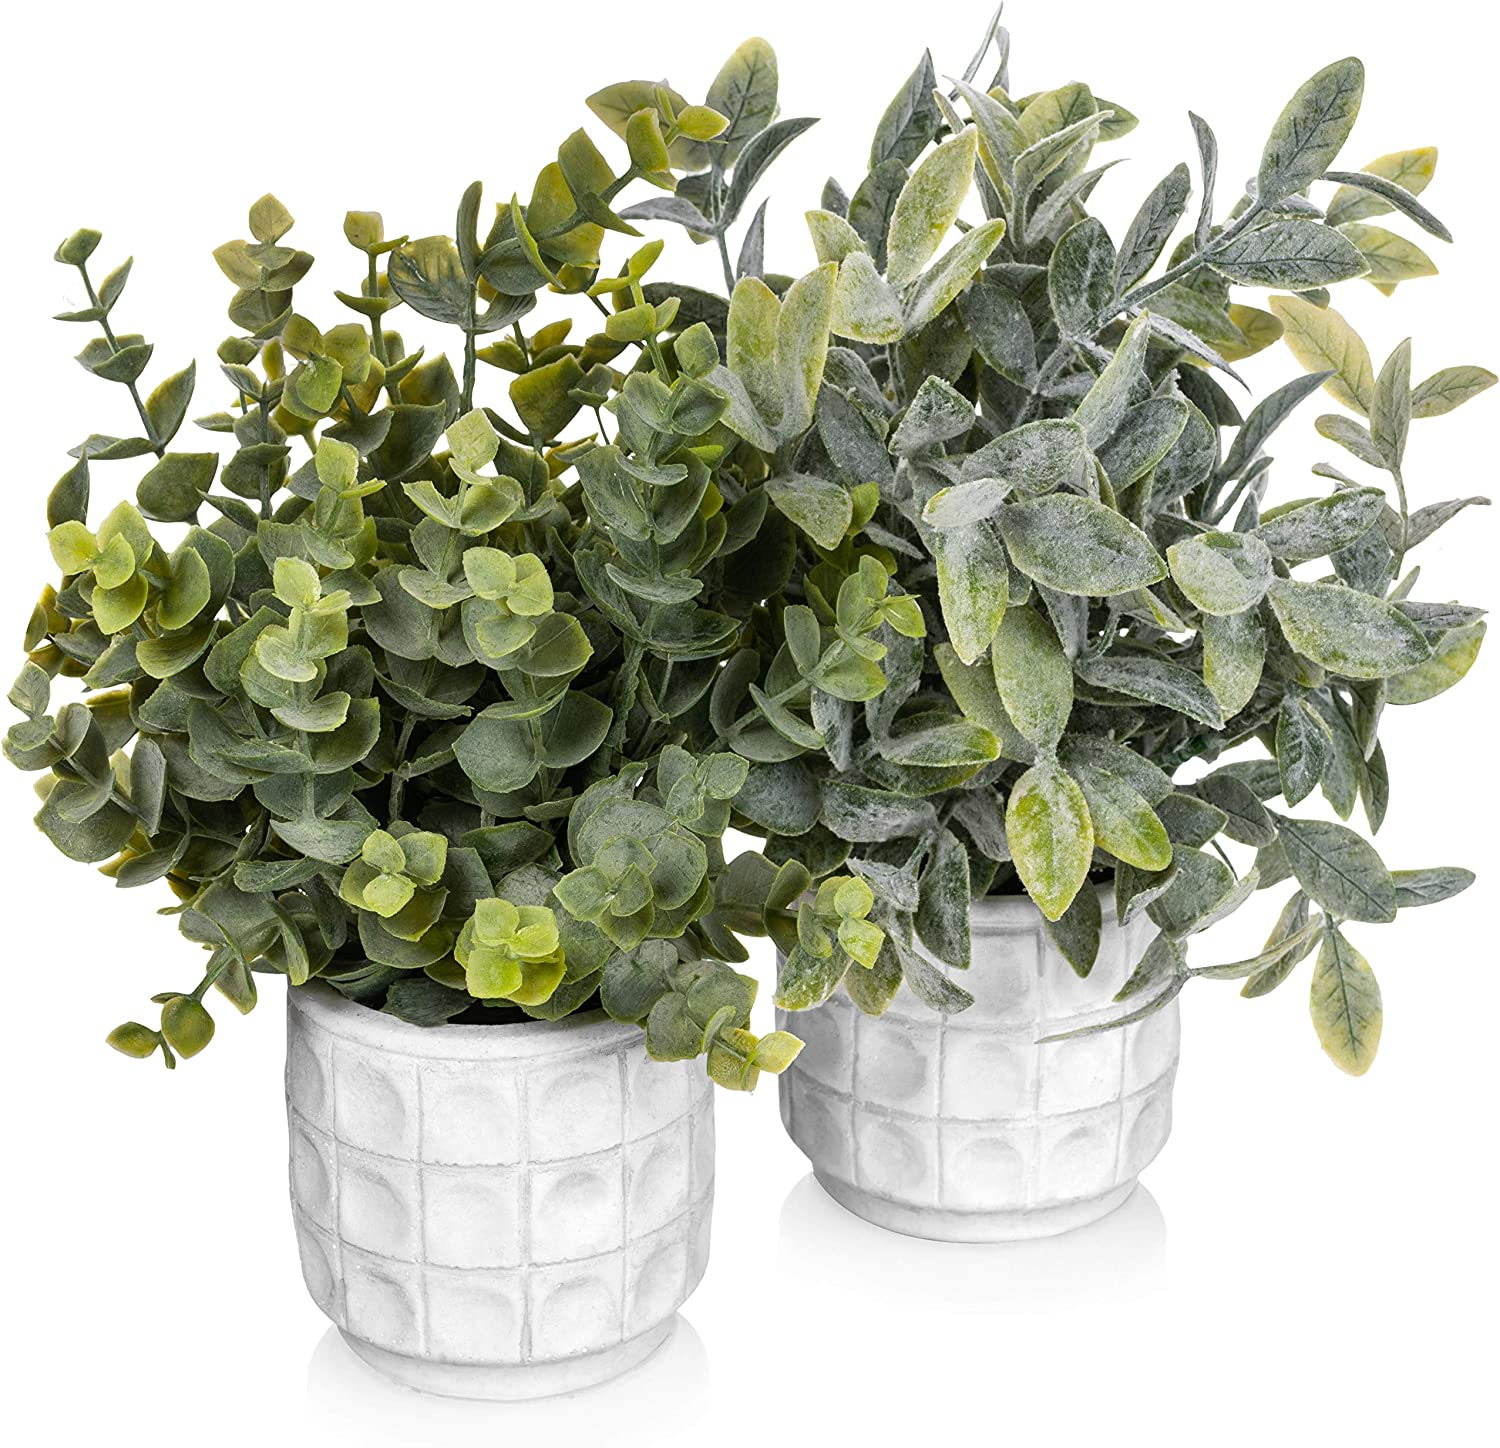 Small Artificial Potted Plants - Fake Plants Decor White Pot - Faux Potted Plant for Home Office Shelf Desk Table Bathroom Decor - Small Artificial Plants for Home Decor Indoor